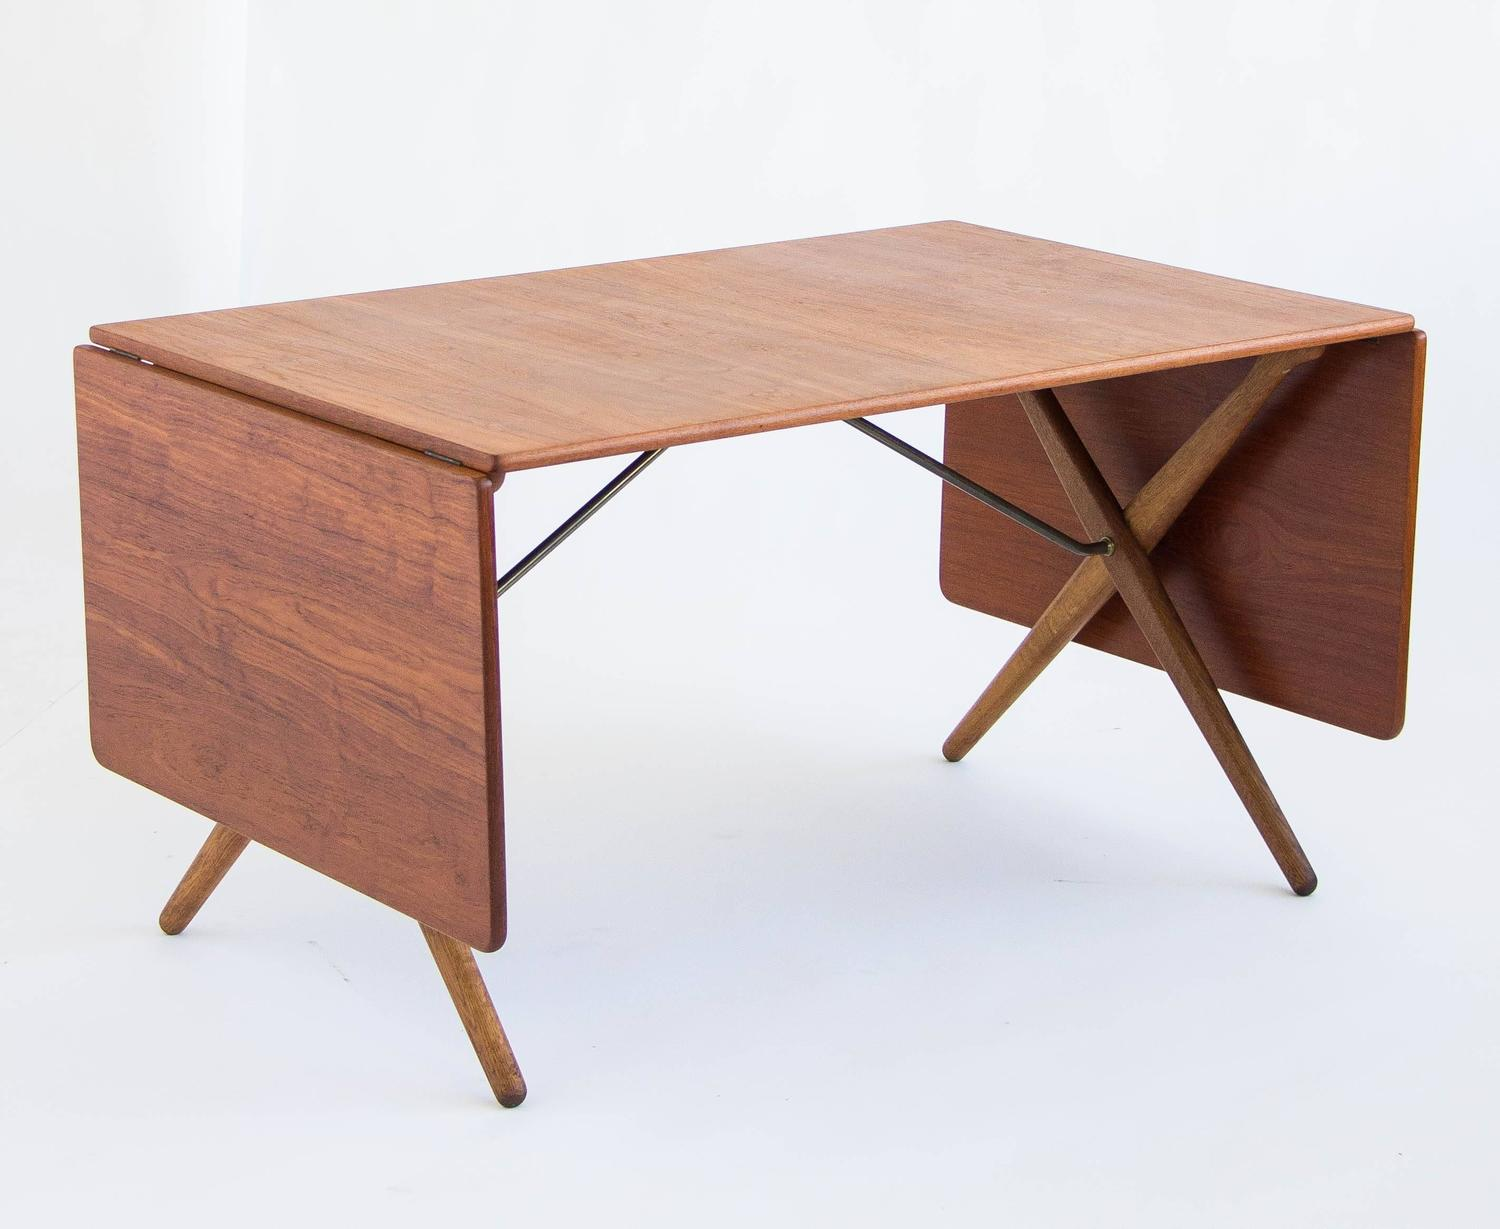 Hans j wegner cross leg dining table by andreas tuck model at 309 for sale at 1stdibs - Crossed leg dining table ...